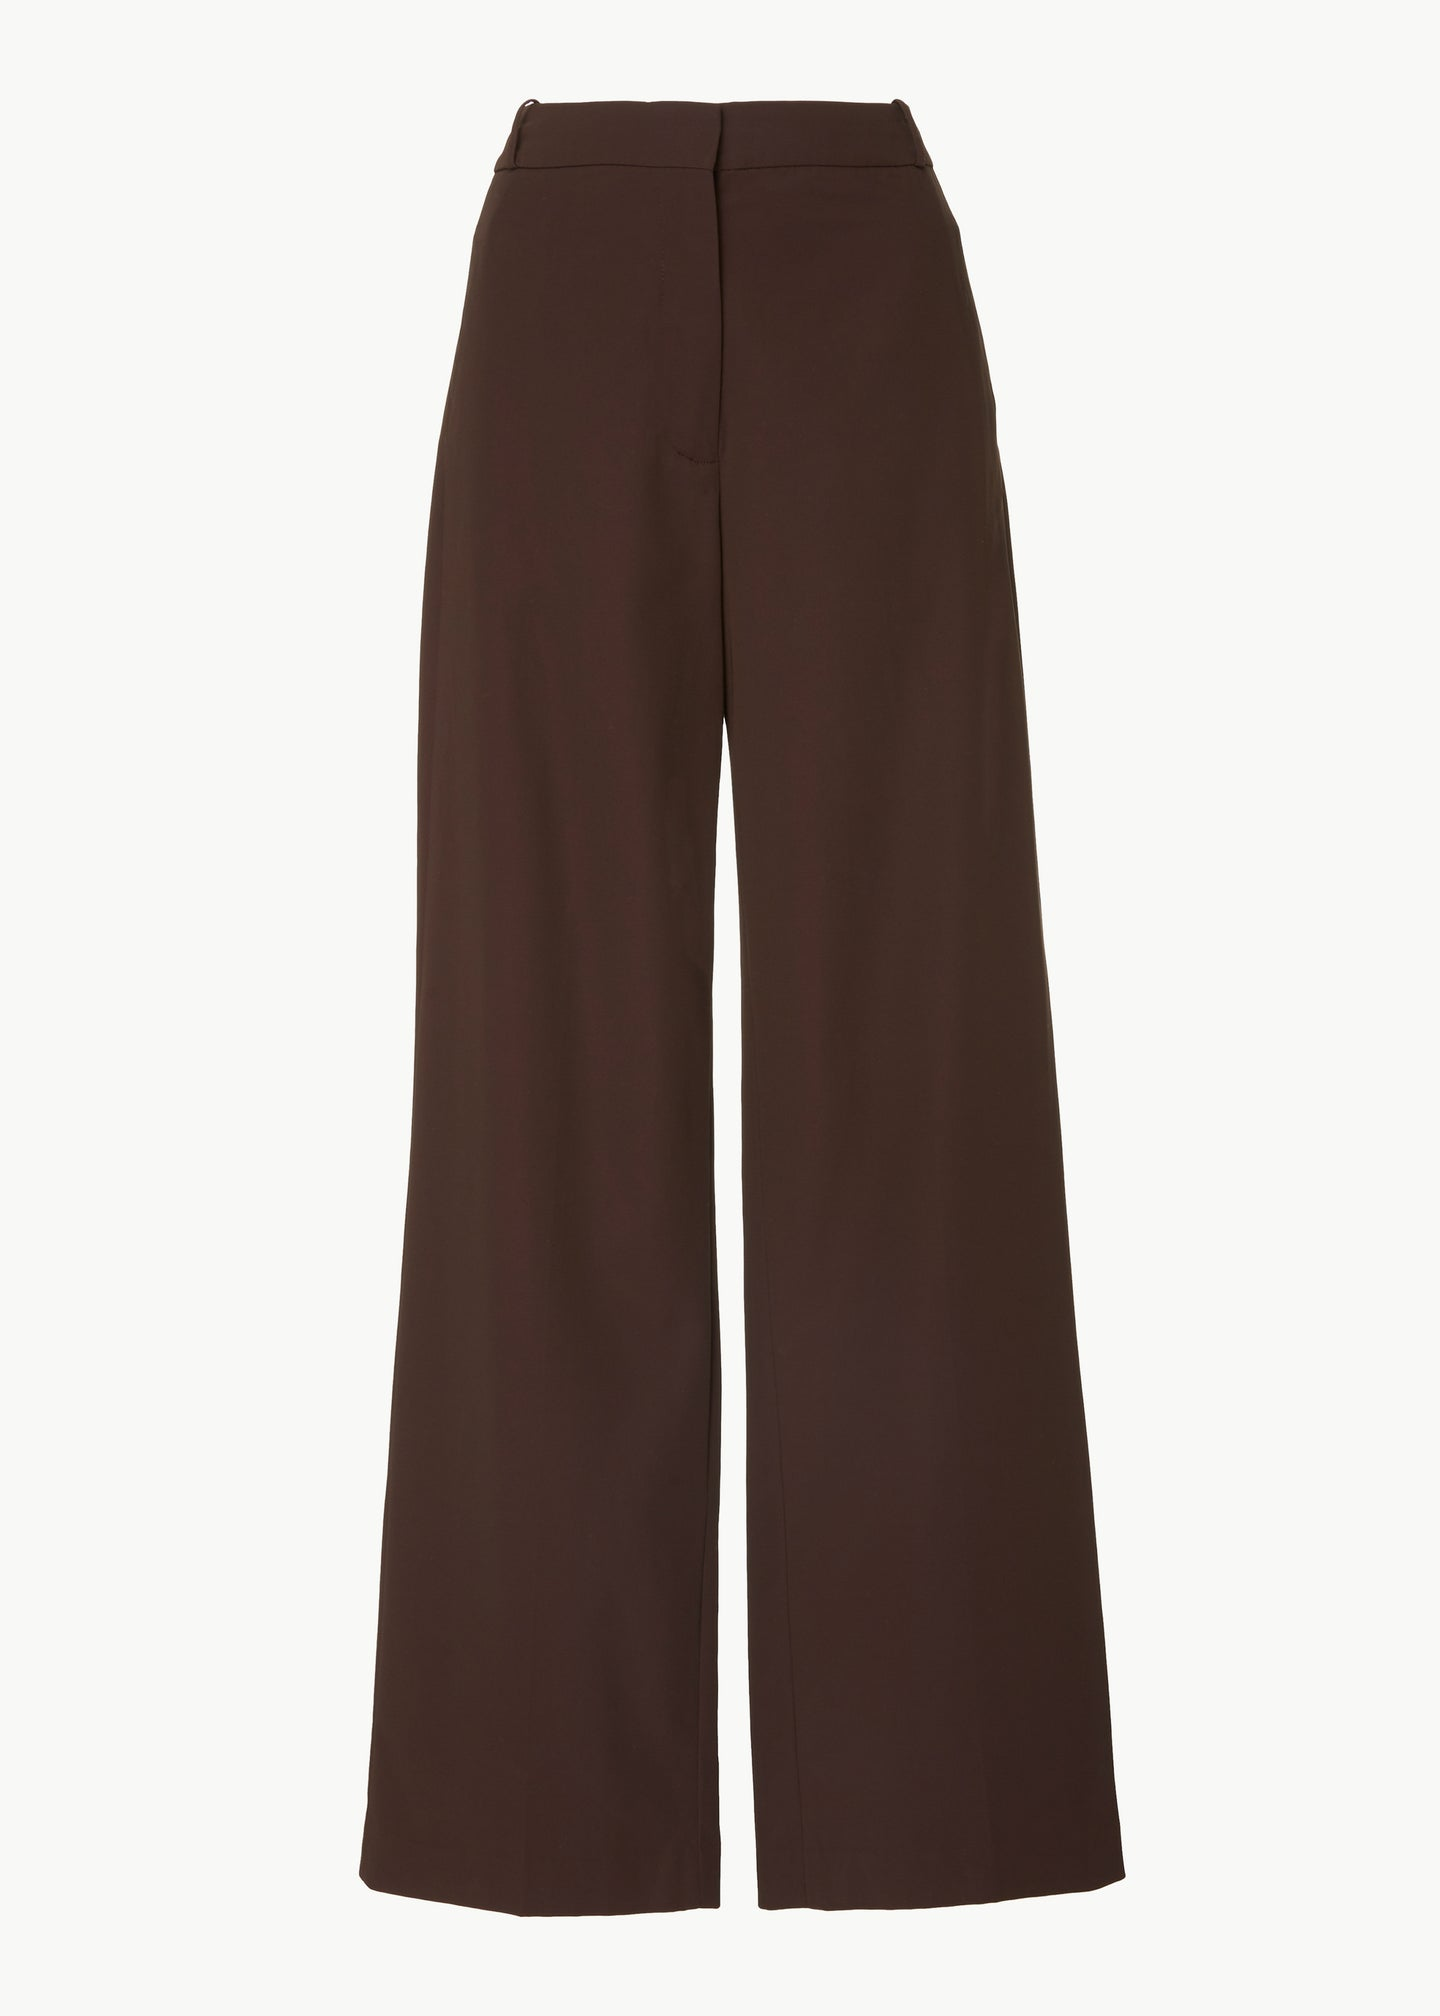 Straight Leg Trouser in Cotton Blend Twill - Espresso - Co Collections